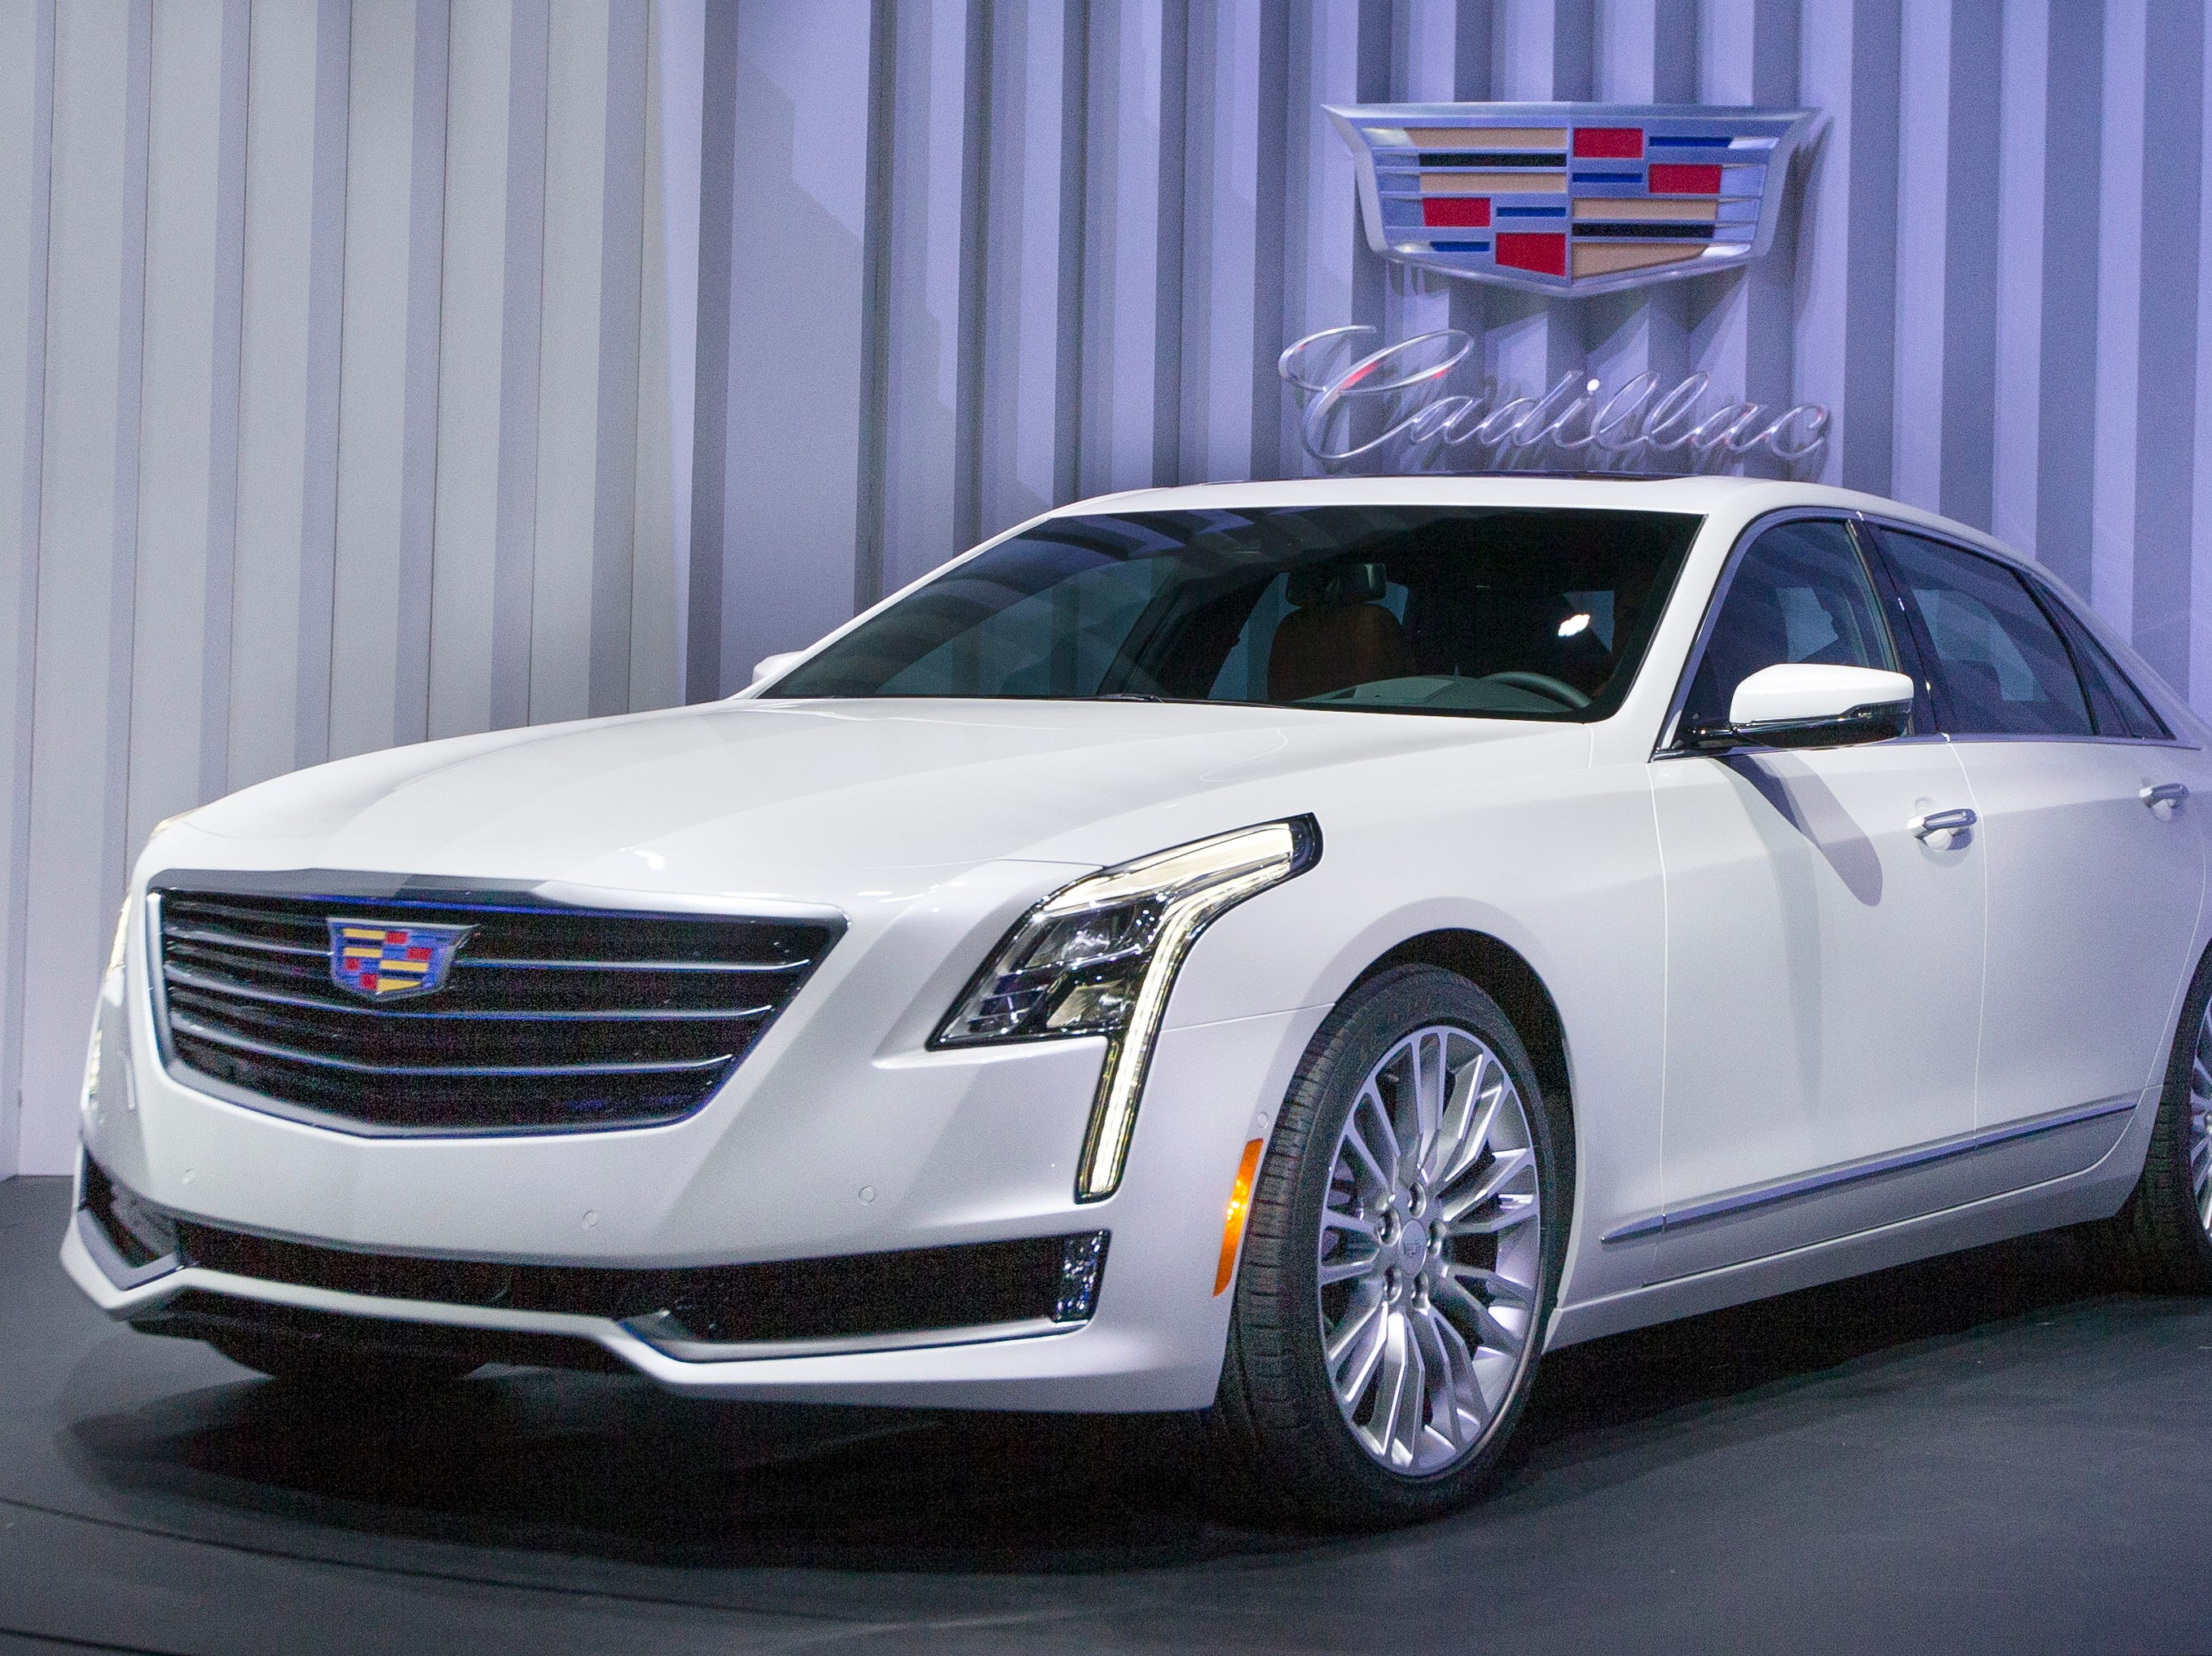 This March 31, 2015 file photo shows the Cadillac CT6 at the New York International Auto Show event in Duggal Greenhouse, in the Brooklyn borough of New York. Cadillac goes back to its roots with a new rear-drive luxury land yacht that isnÕt supposed to behave like one. The CT6 has an aluminum-intensive body with 11 different materials for strength, performance and efficiency.